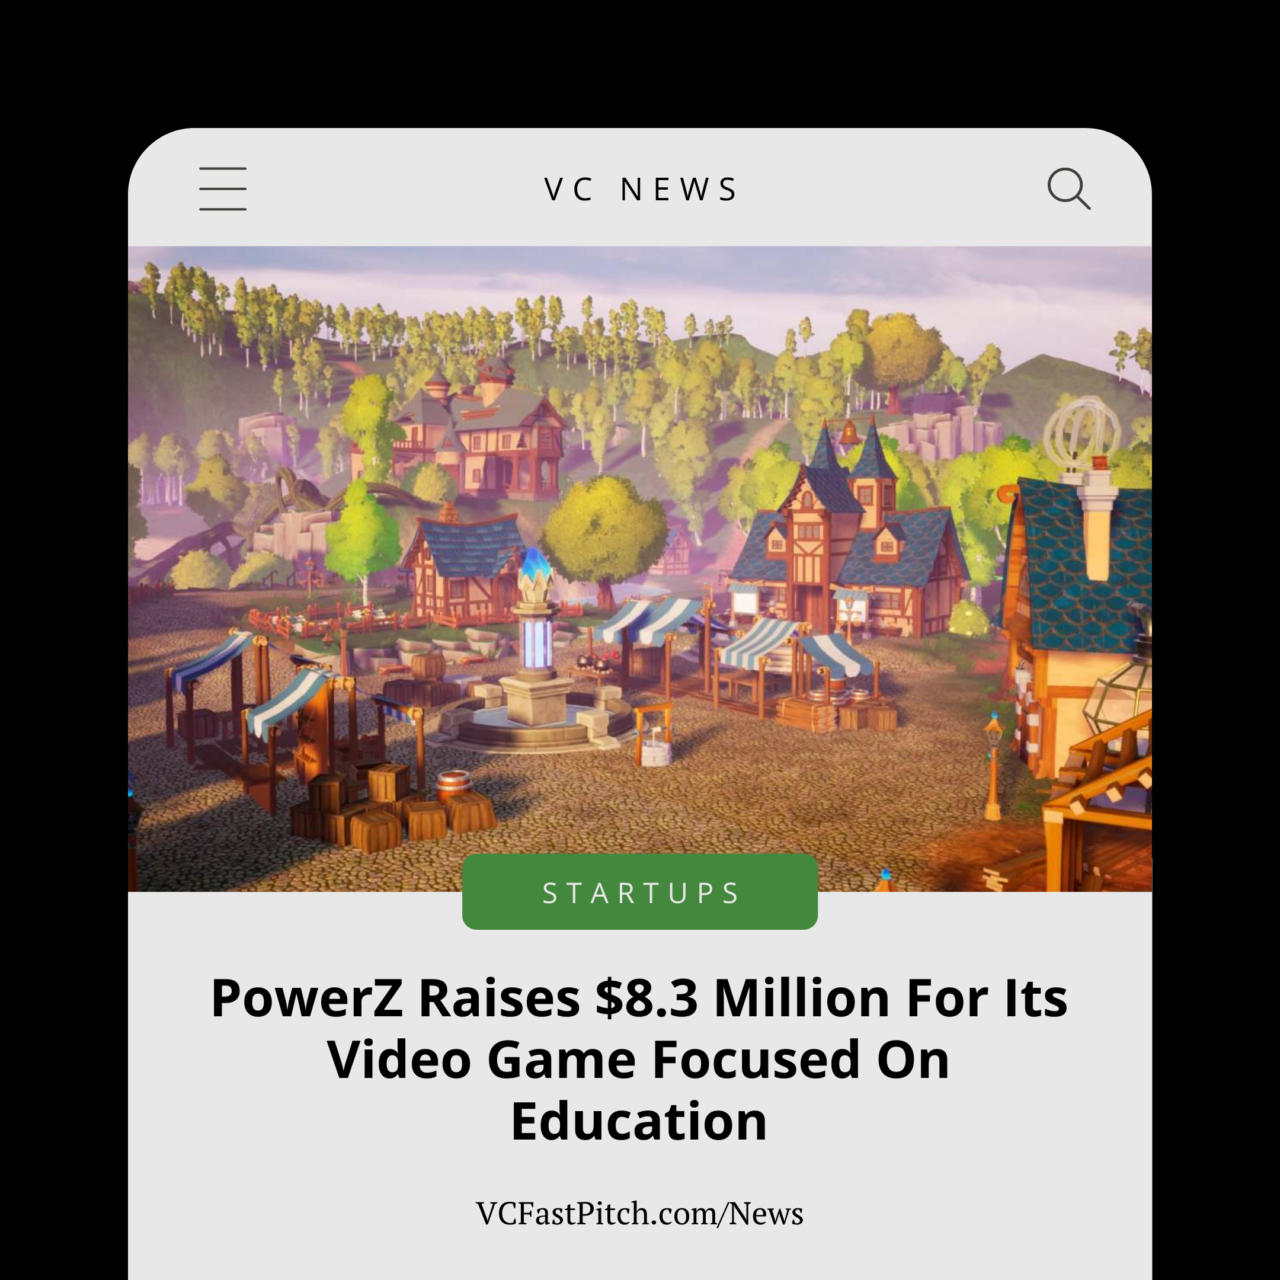 PowerZ Raises $8.3 Million For Its Video Game Focused On Education